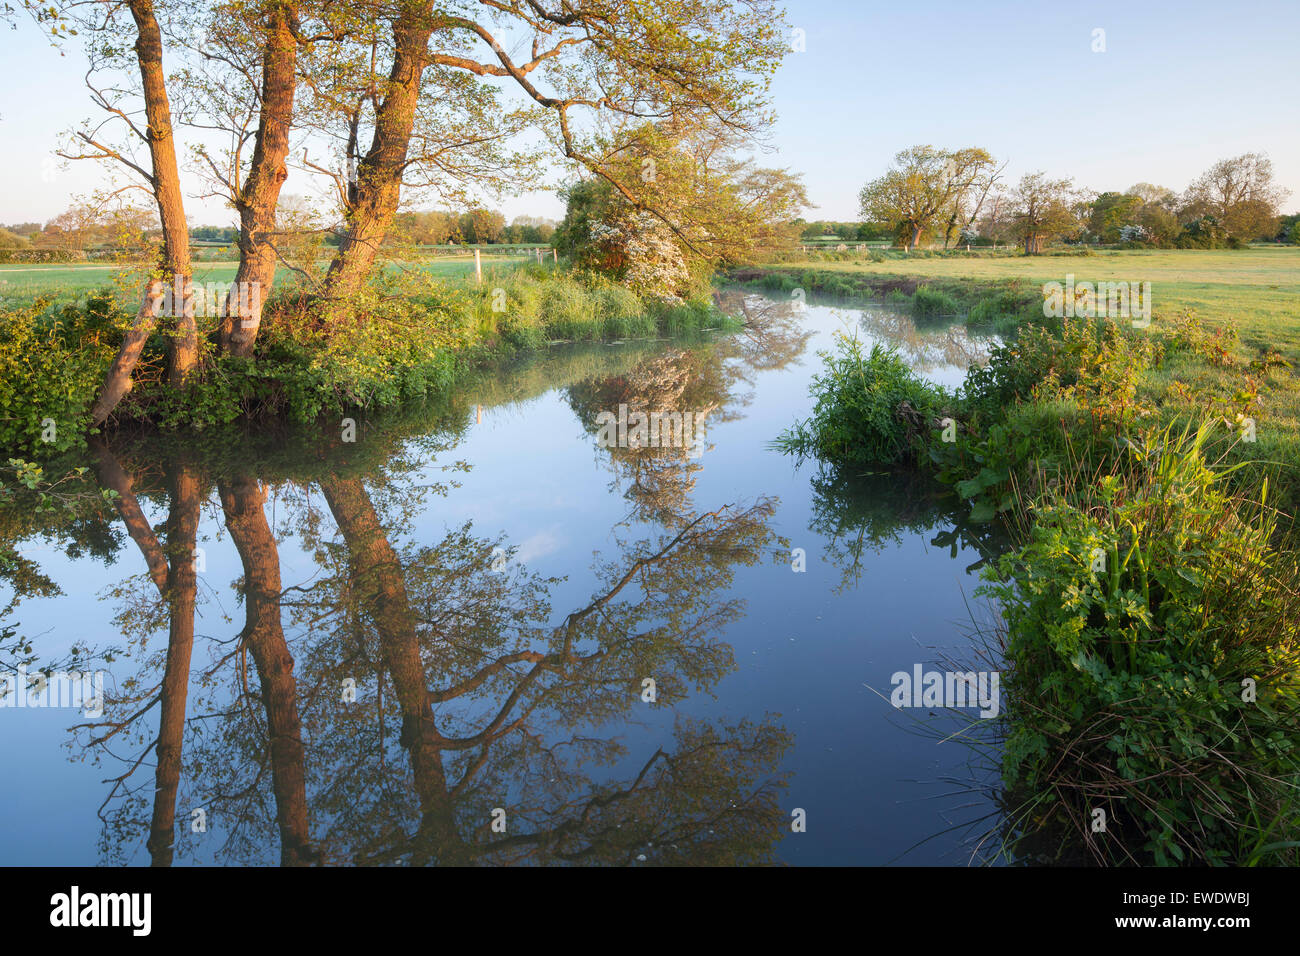 River Ouse at Barcombe Mills near Lewes, East Sussex, England, UK - Stock Image